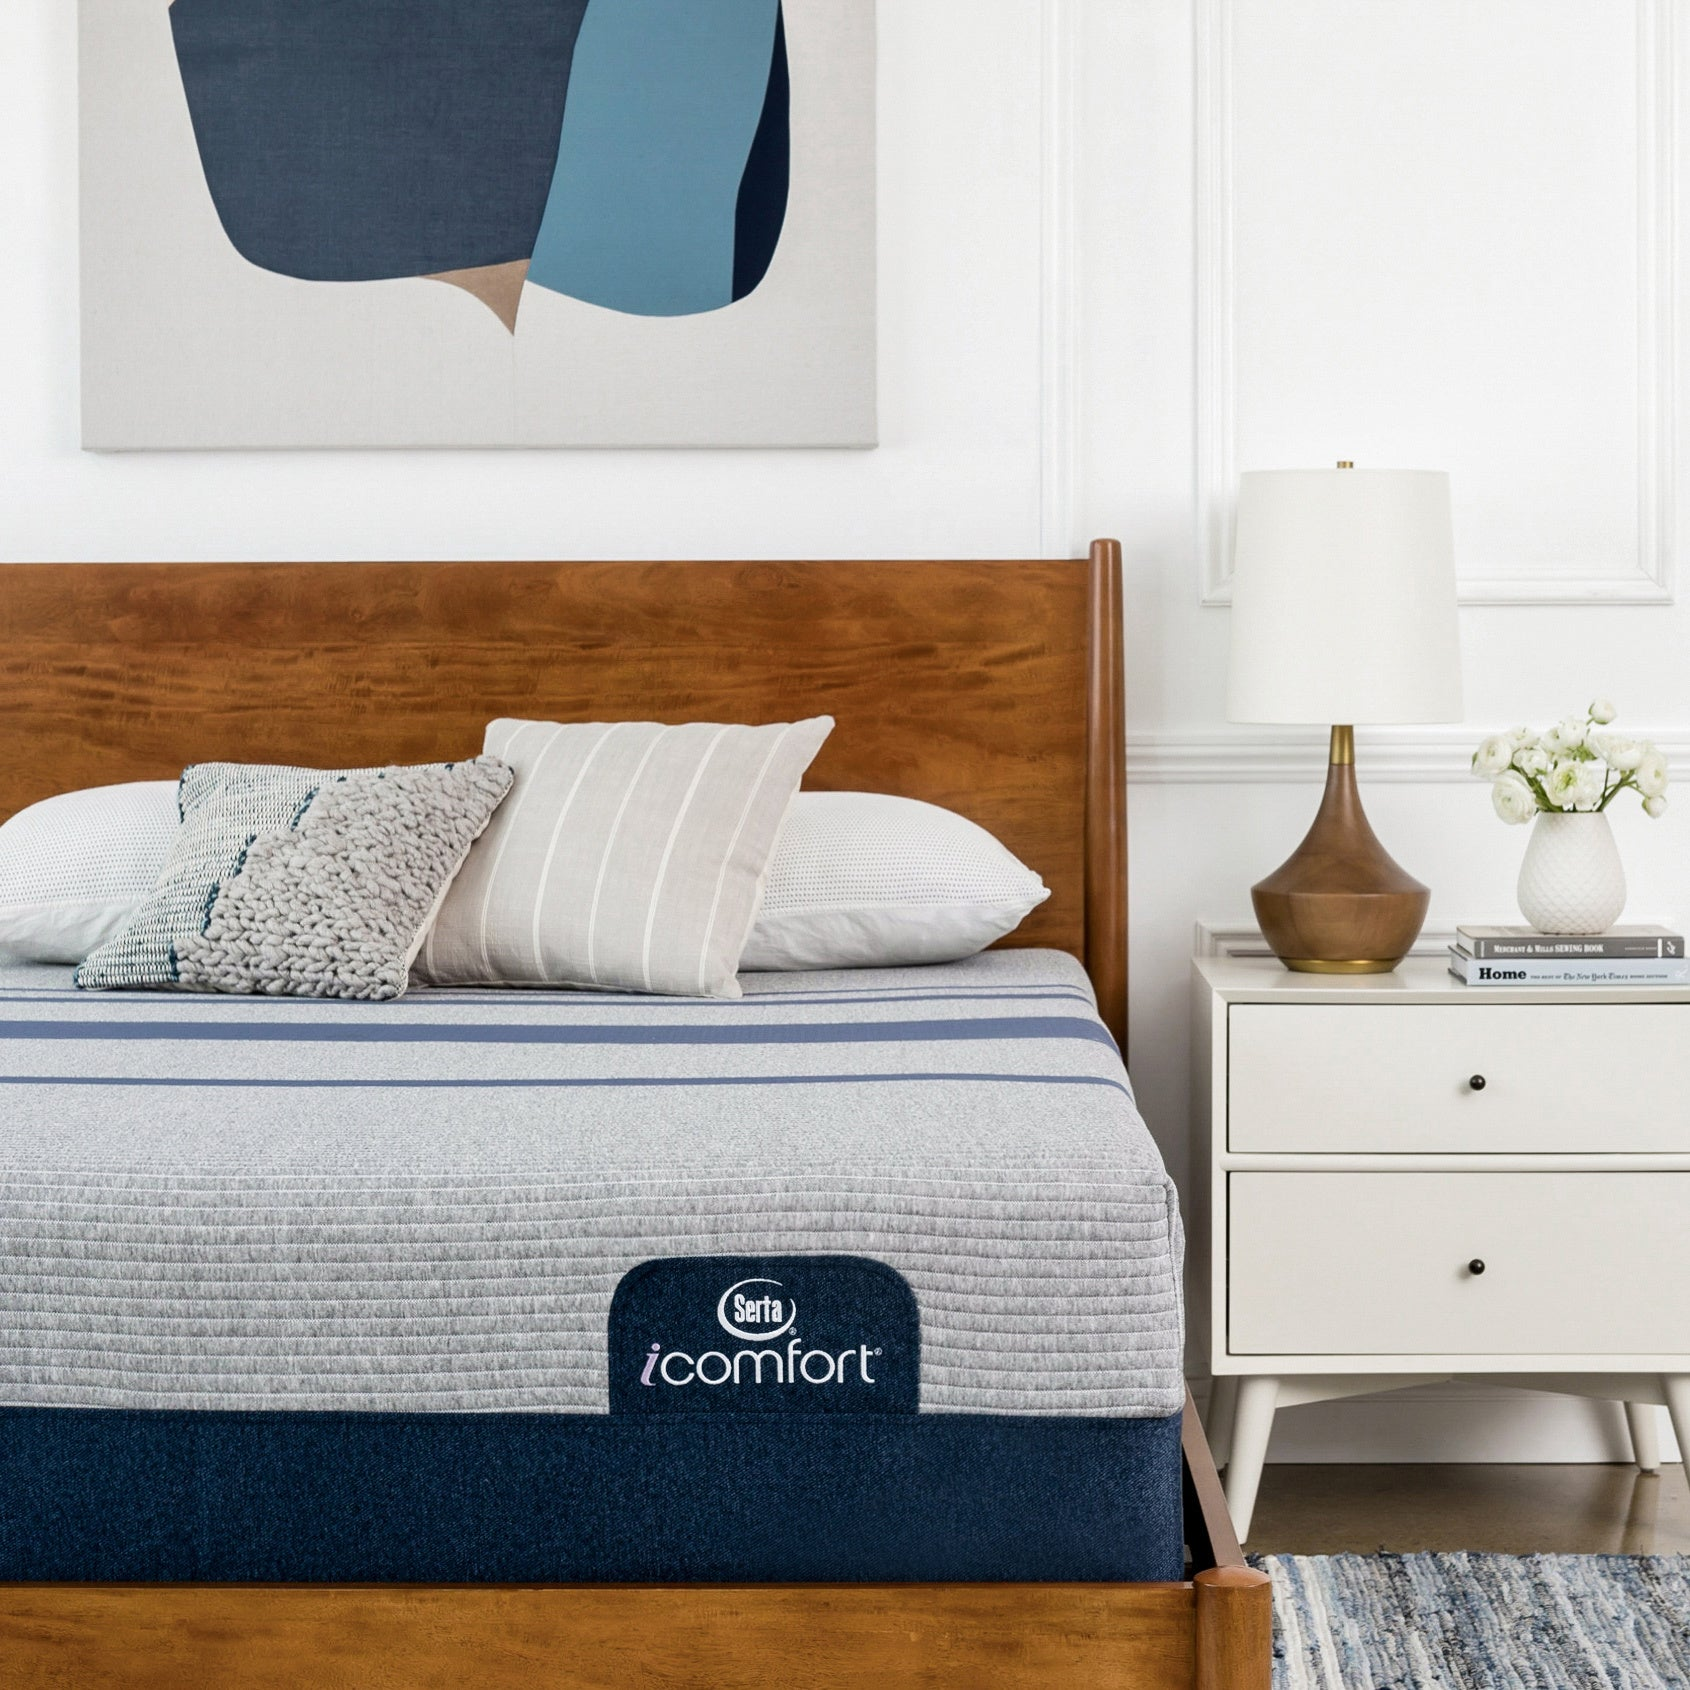 on line ico now is serta sleep it by icomfort blueborder s detail bed offering